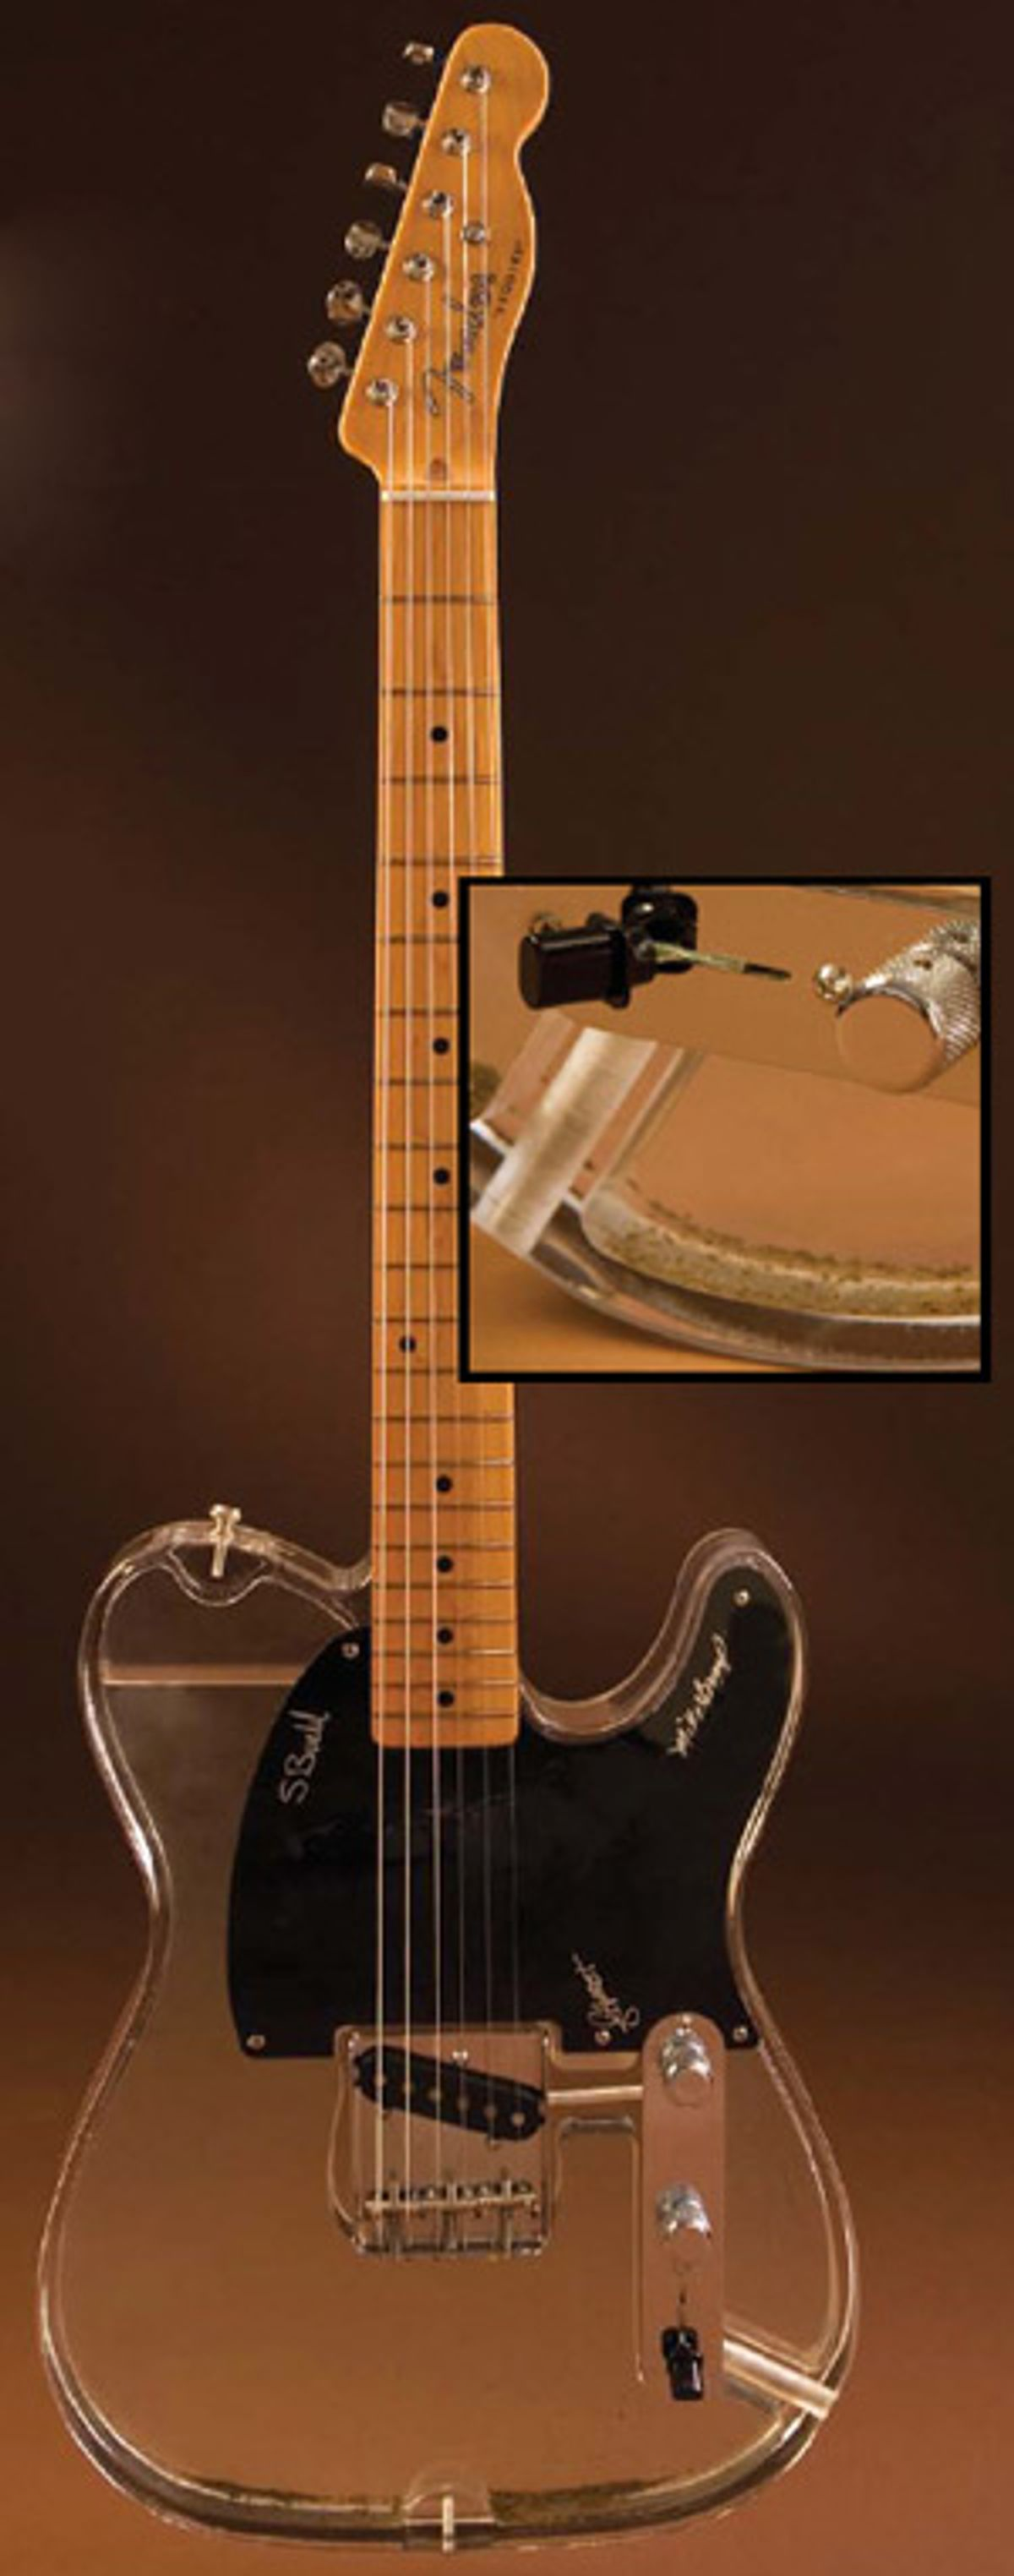 The Fender Cumberland River Floodwater Lucite Esquire